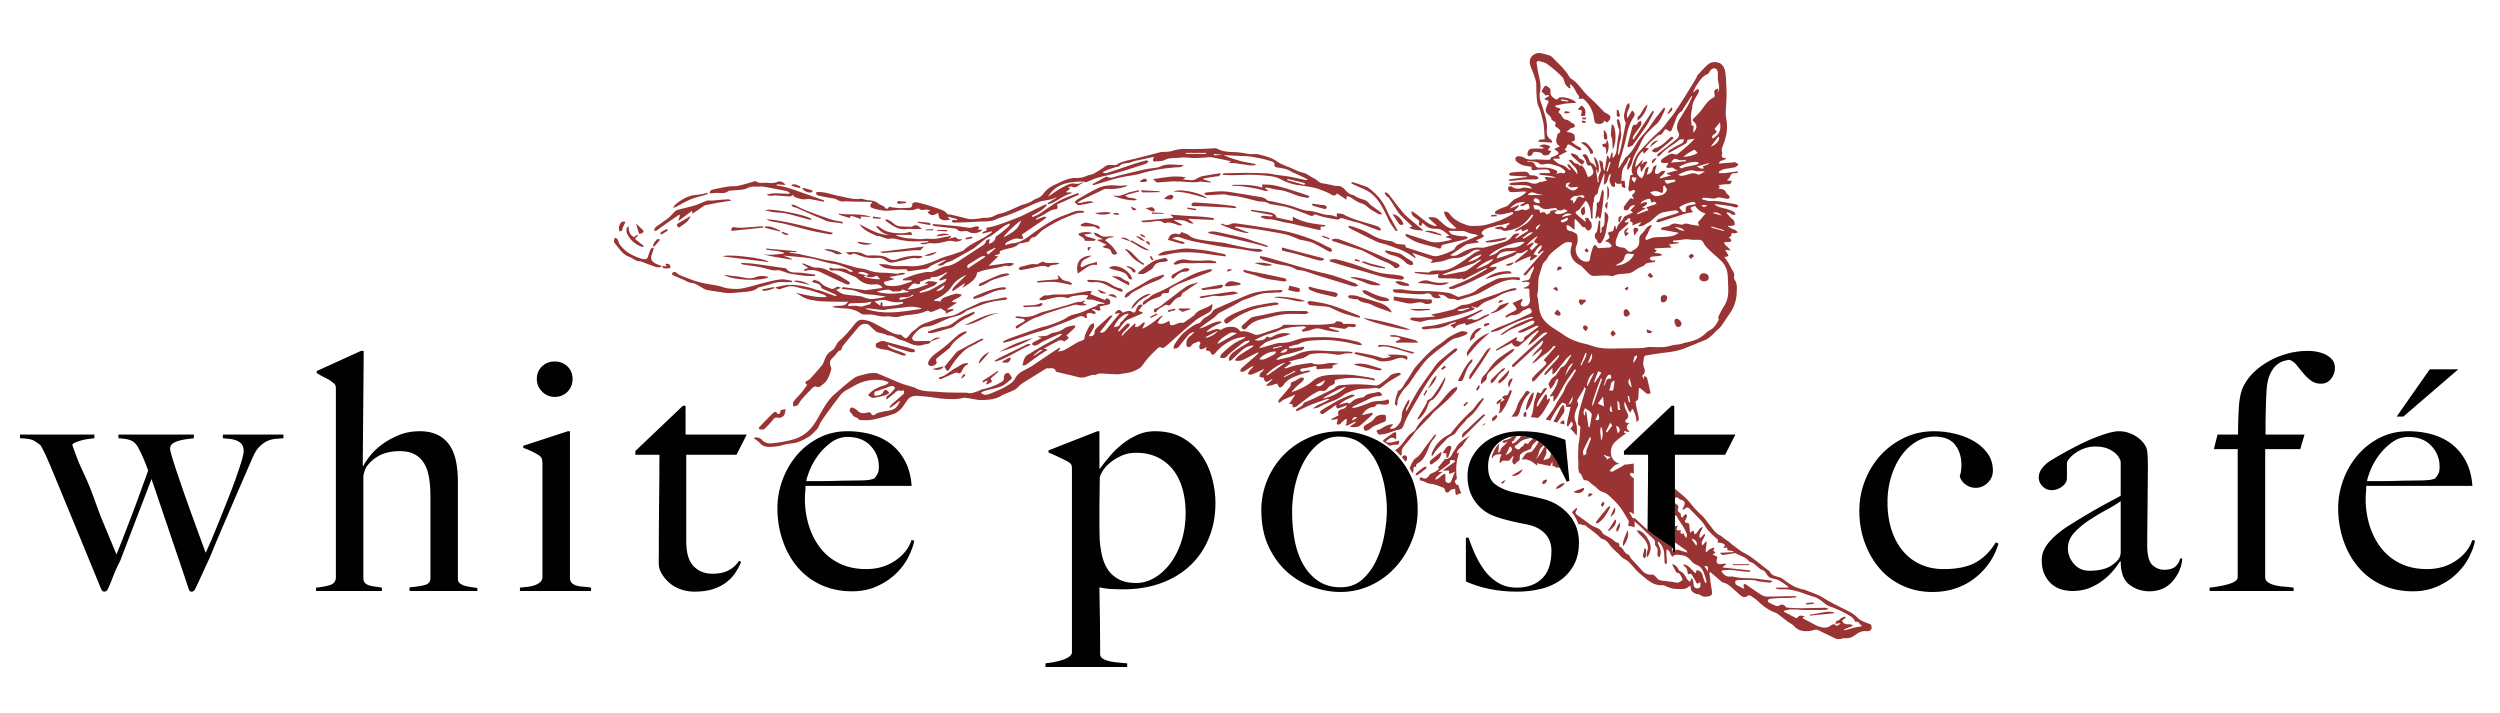 WPC-FoxLogo copy.png